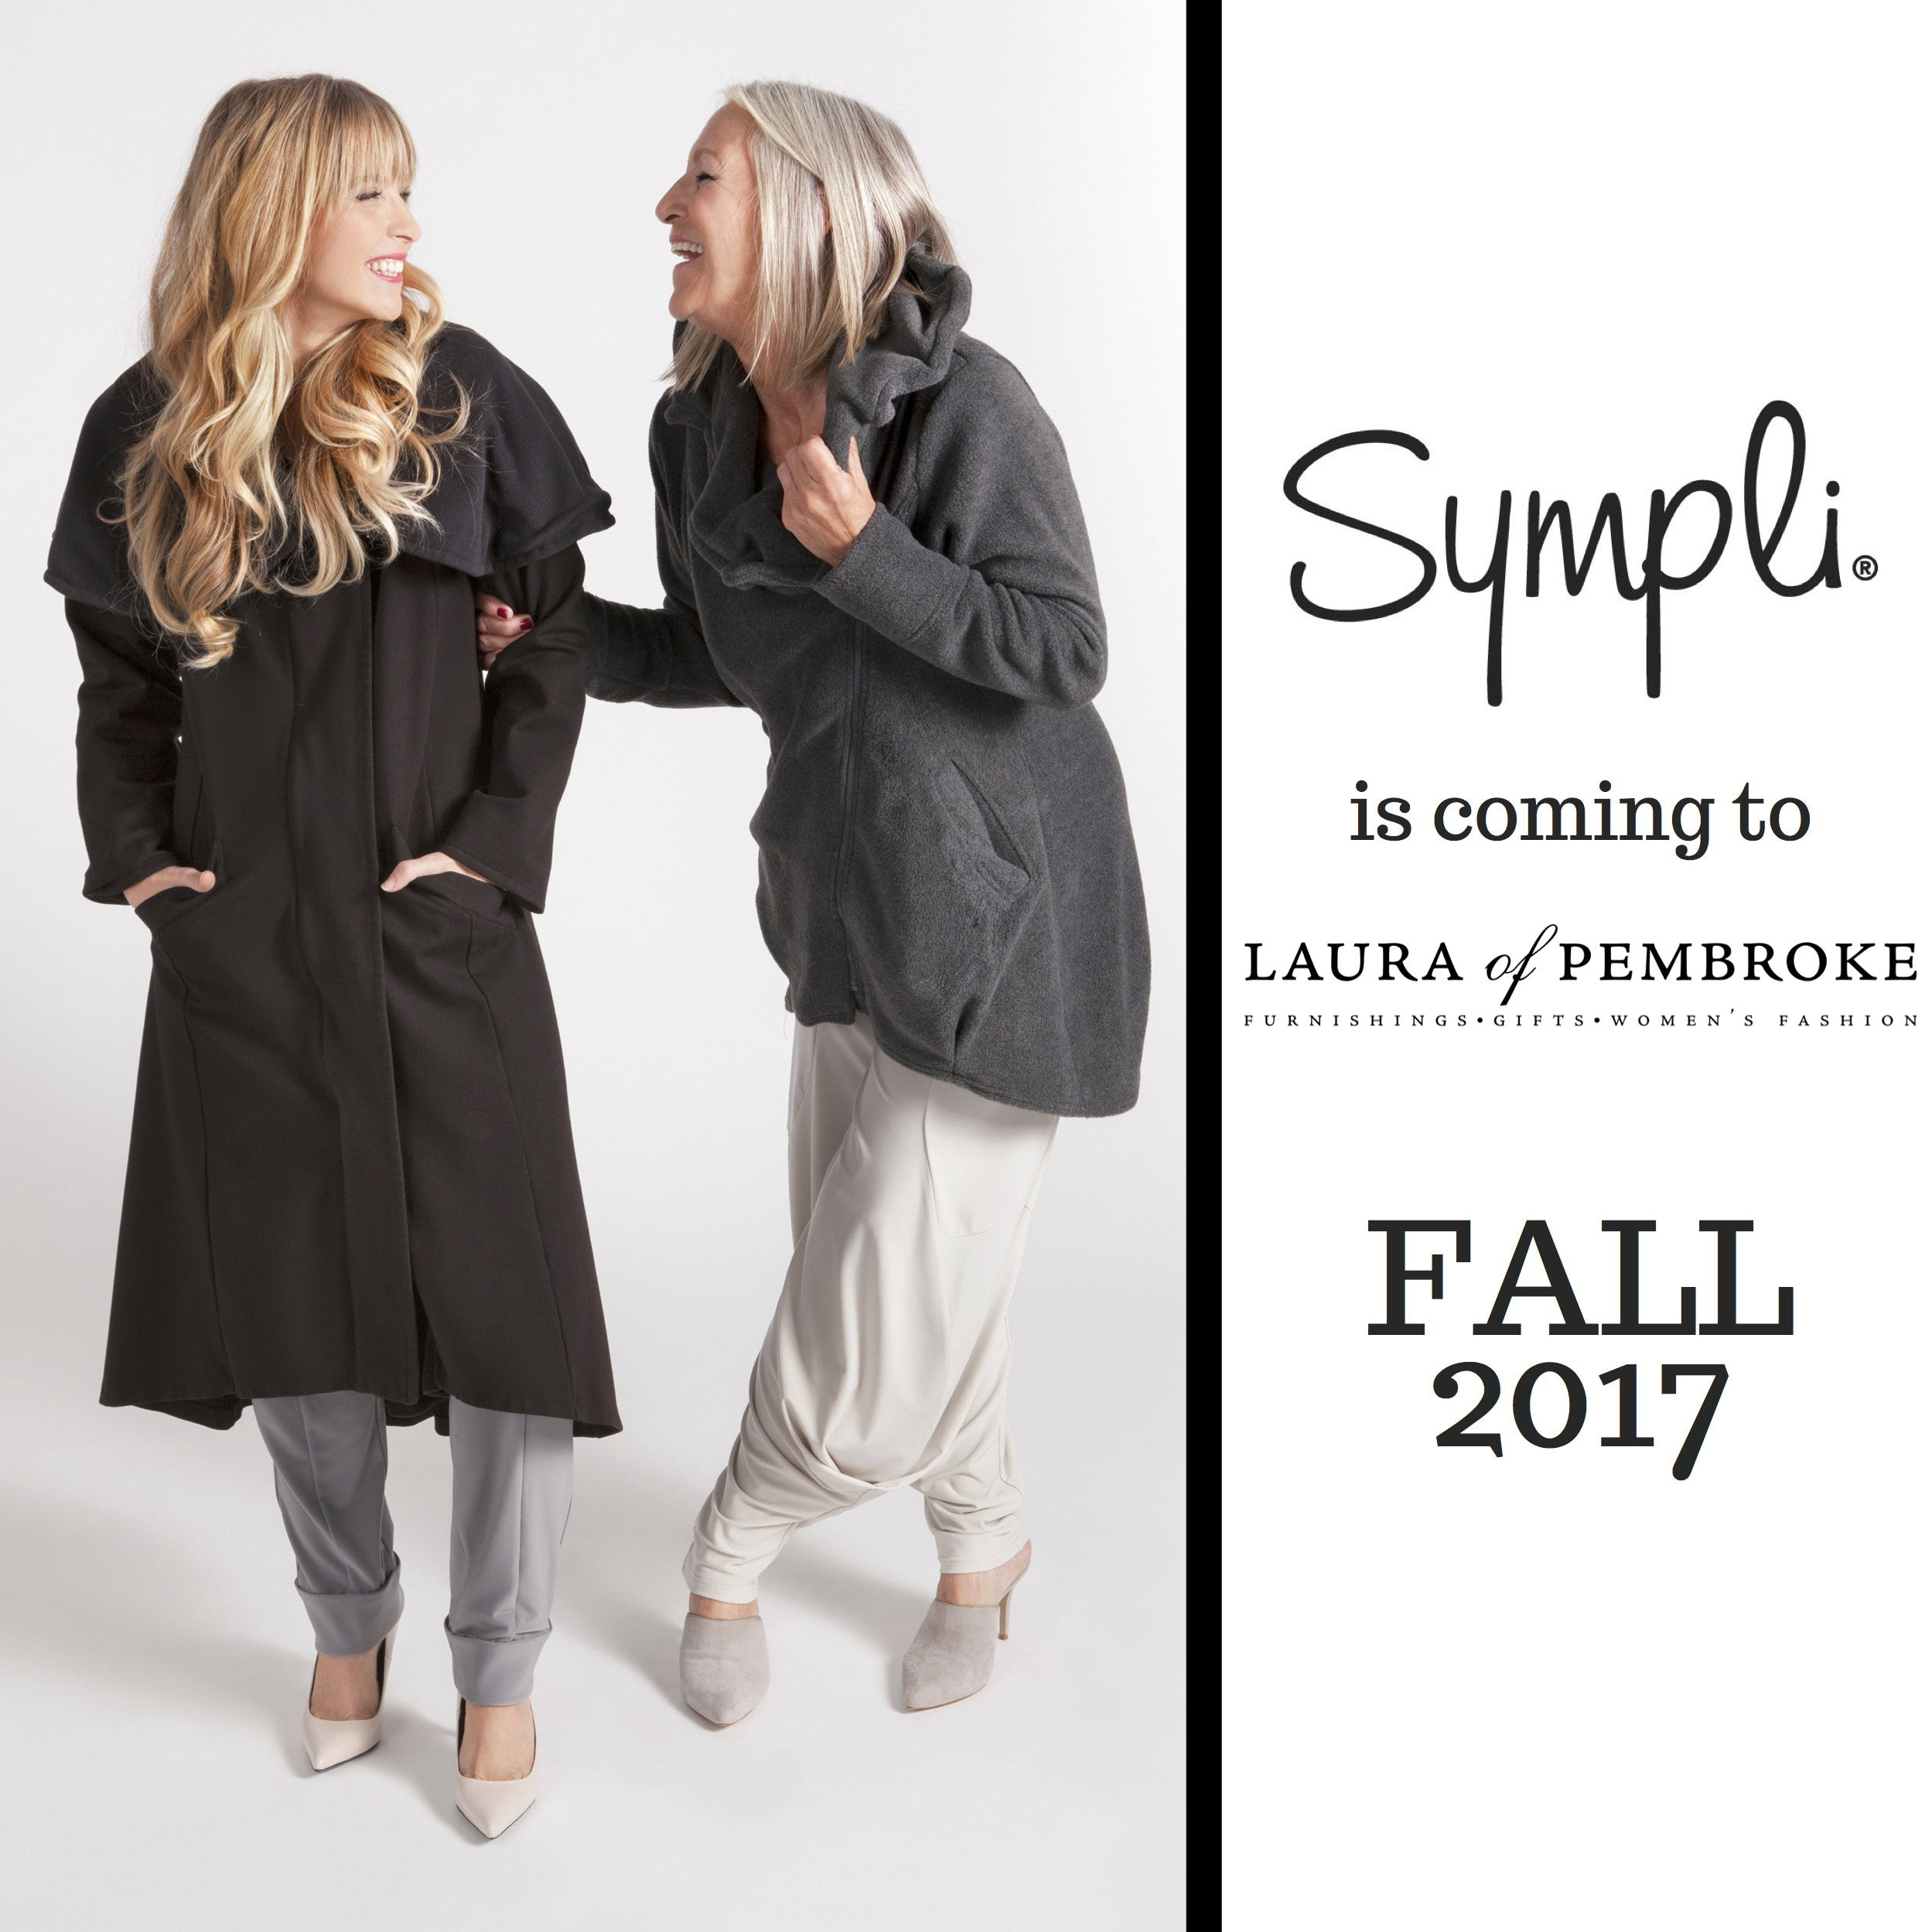 Sympli at Laura of Pembroke